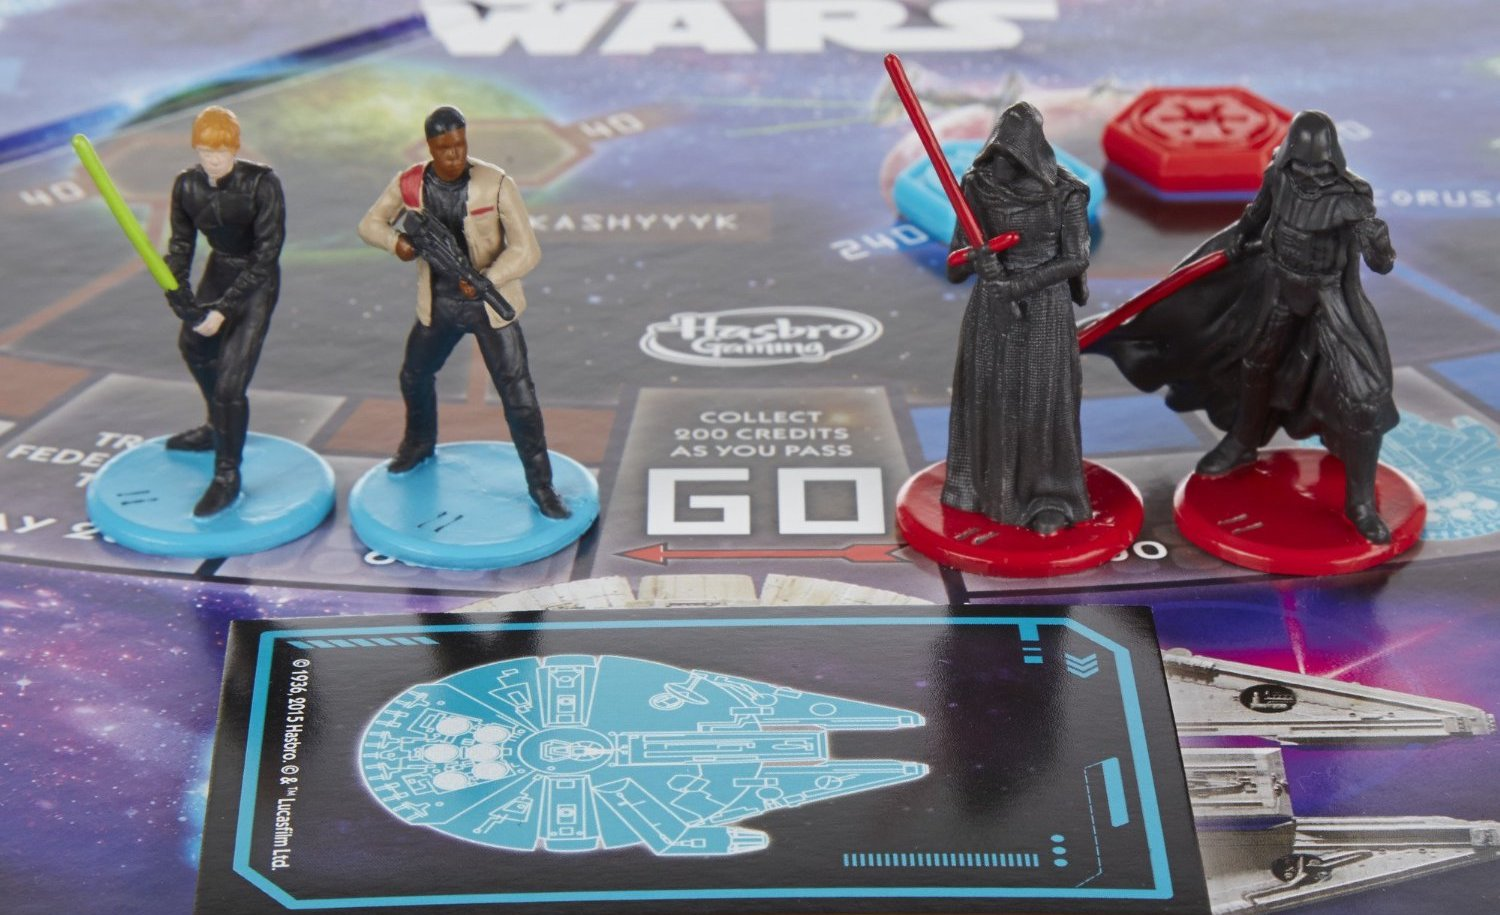 Hasbro Cites 'Insufficient Interest' in Adding Rey Token to Monopoly